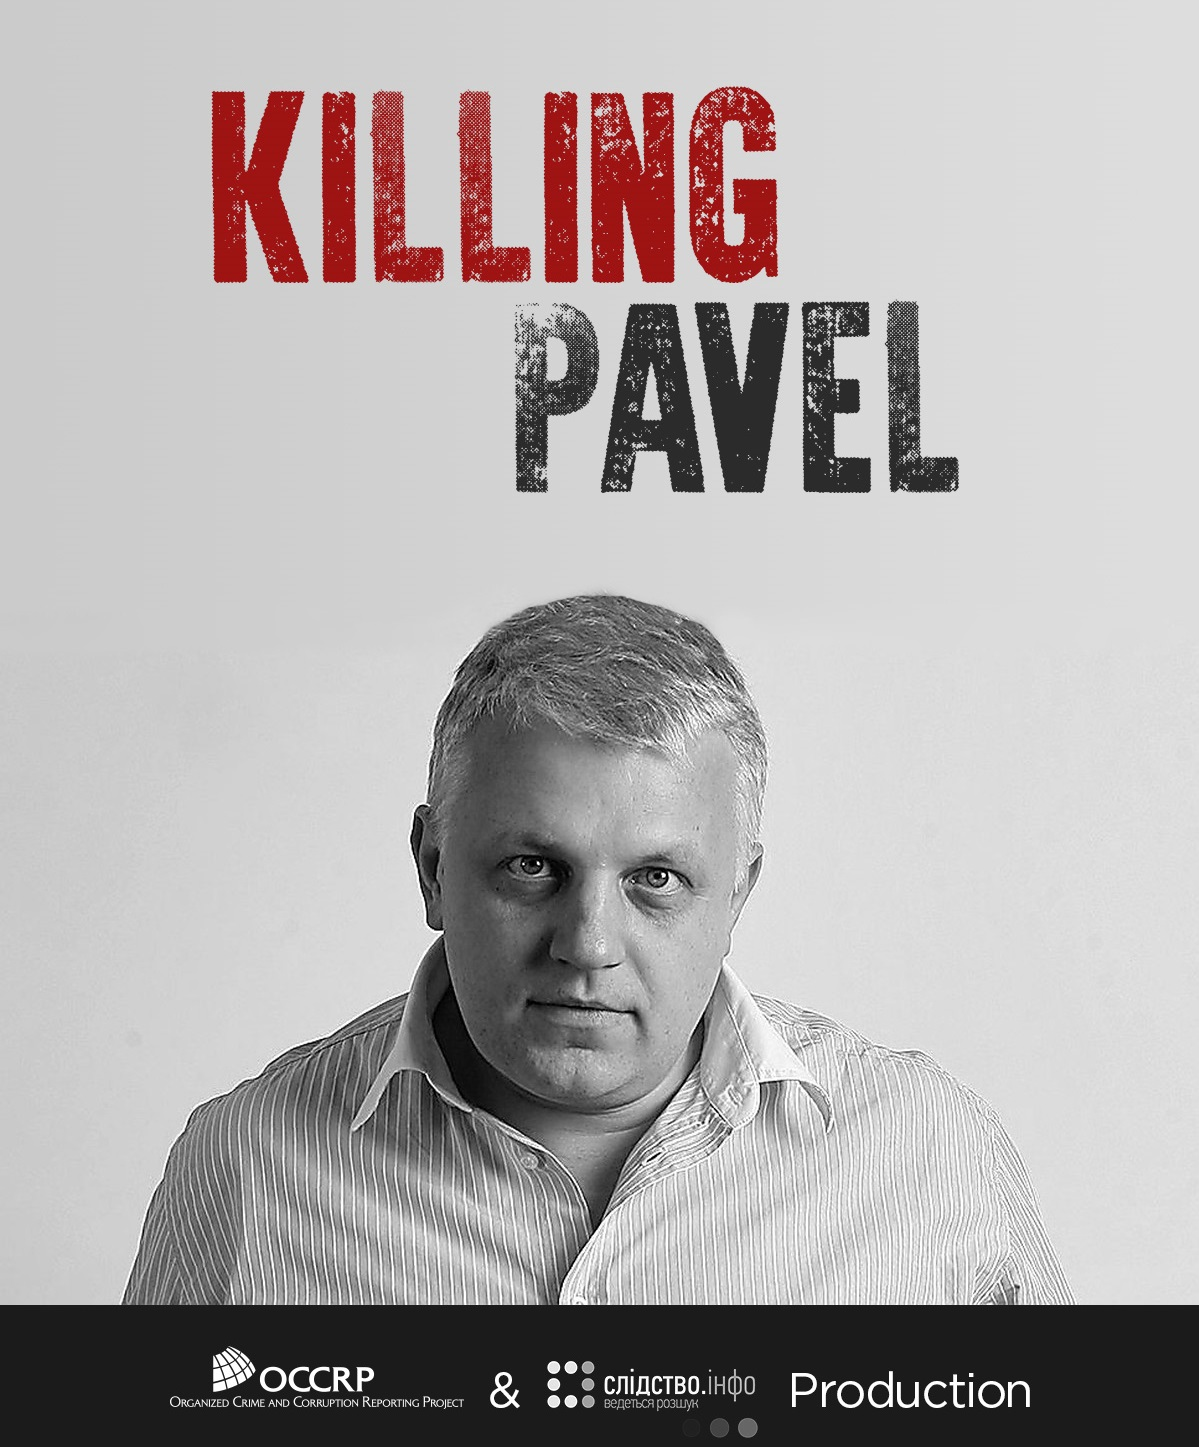 #ReportIt: Five years of impunity – what the murder of Pavel Sheremet means for journalism in Ukraine